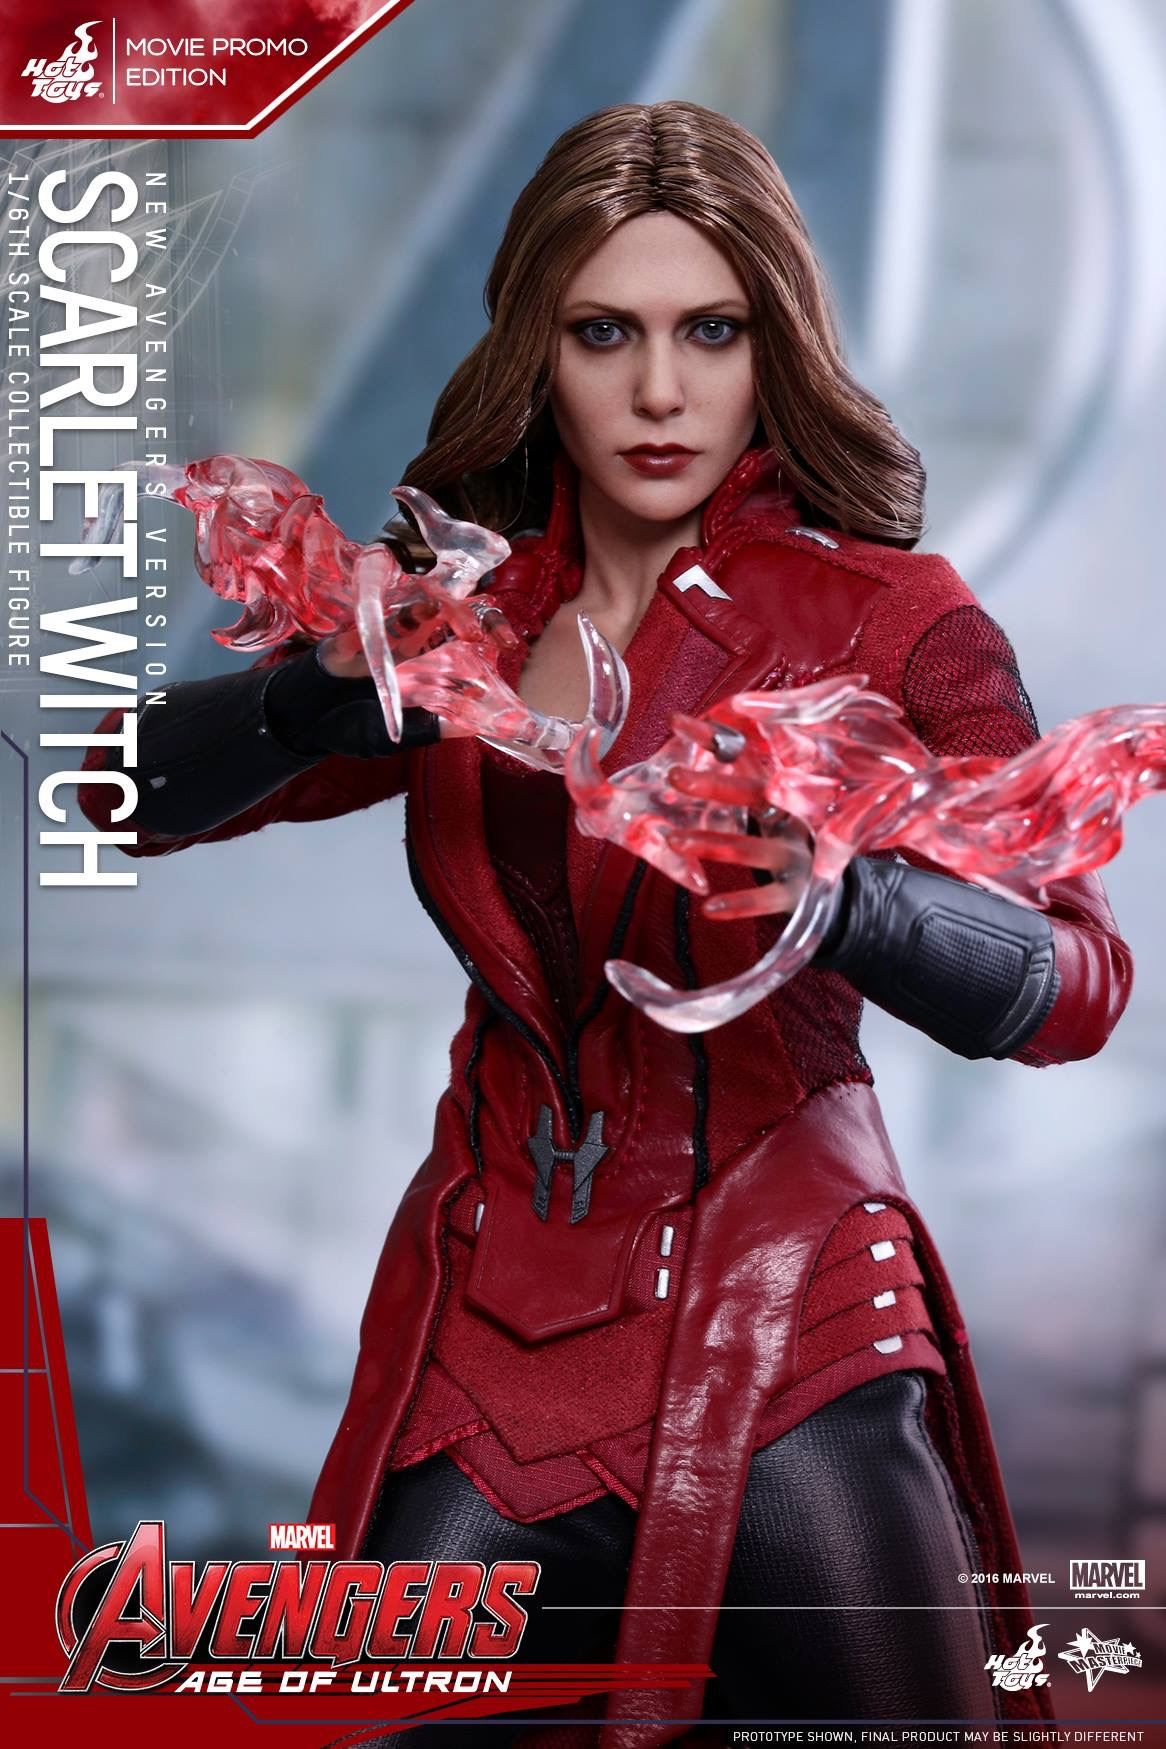 AVENGERS 2 : AGE OF ULTRON - SCARLET WITCH (MM$357) 160415024955350657